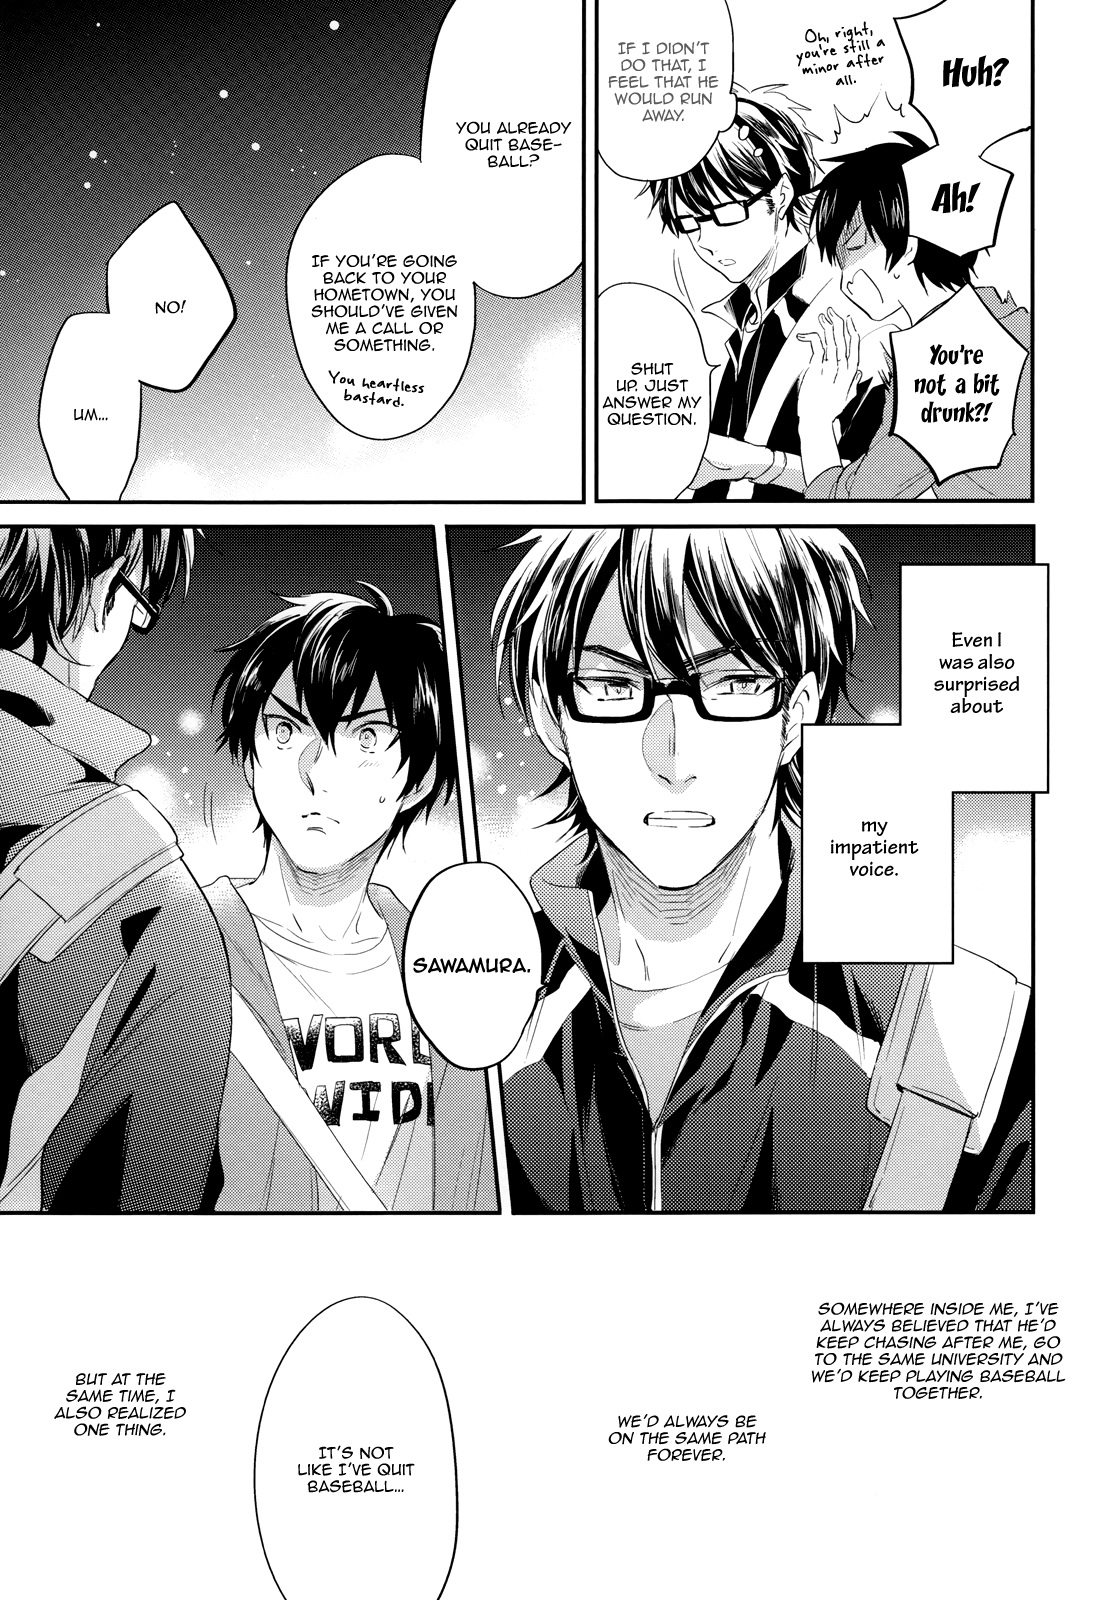 Daiya no A dj - Vintage chapter 1 page 20